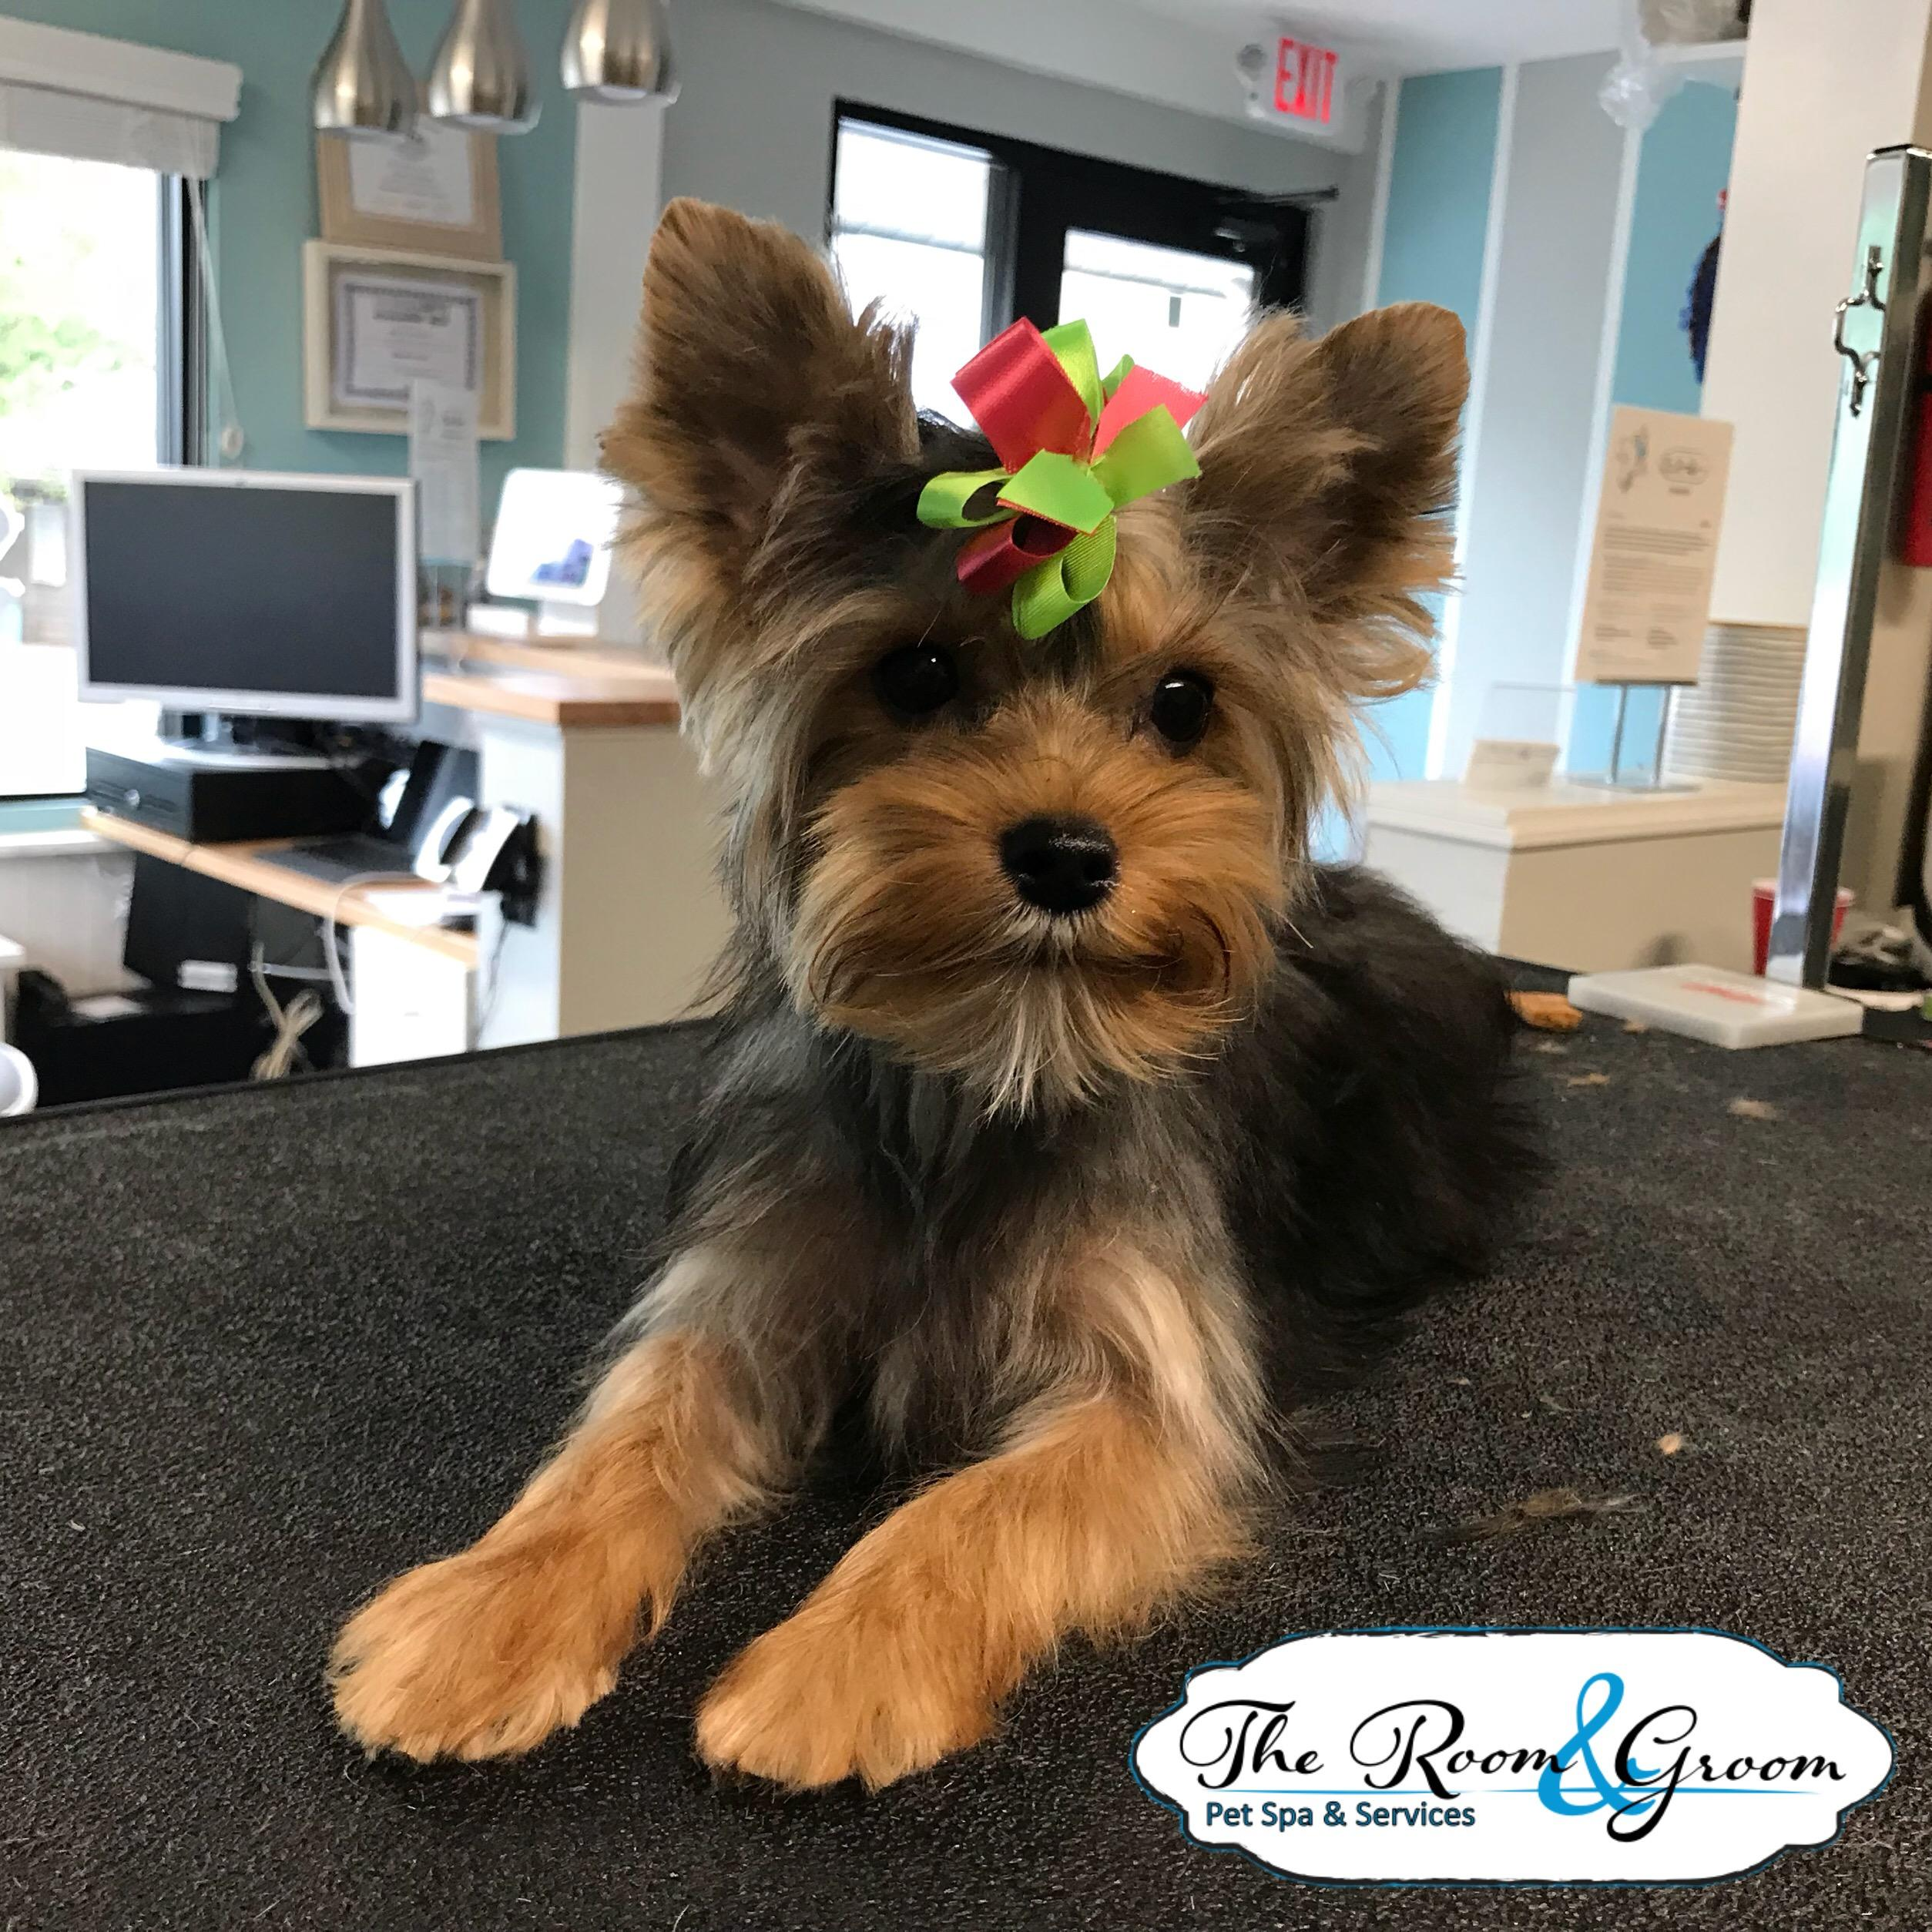 The Room & Groom, Pet Spa & Services image 70